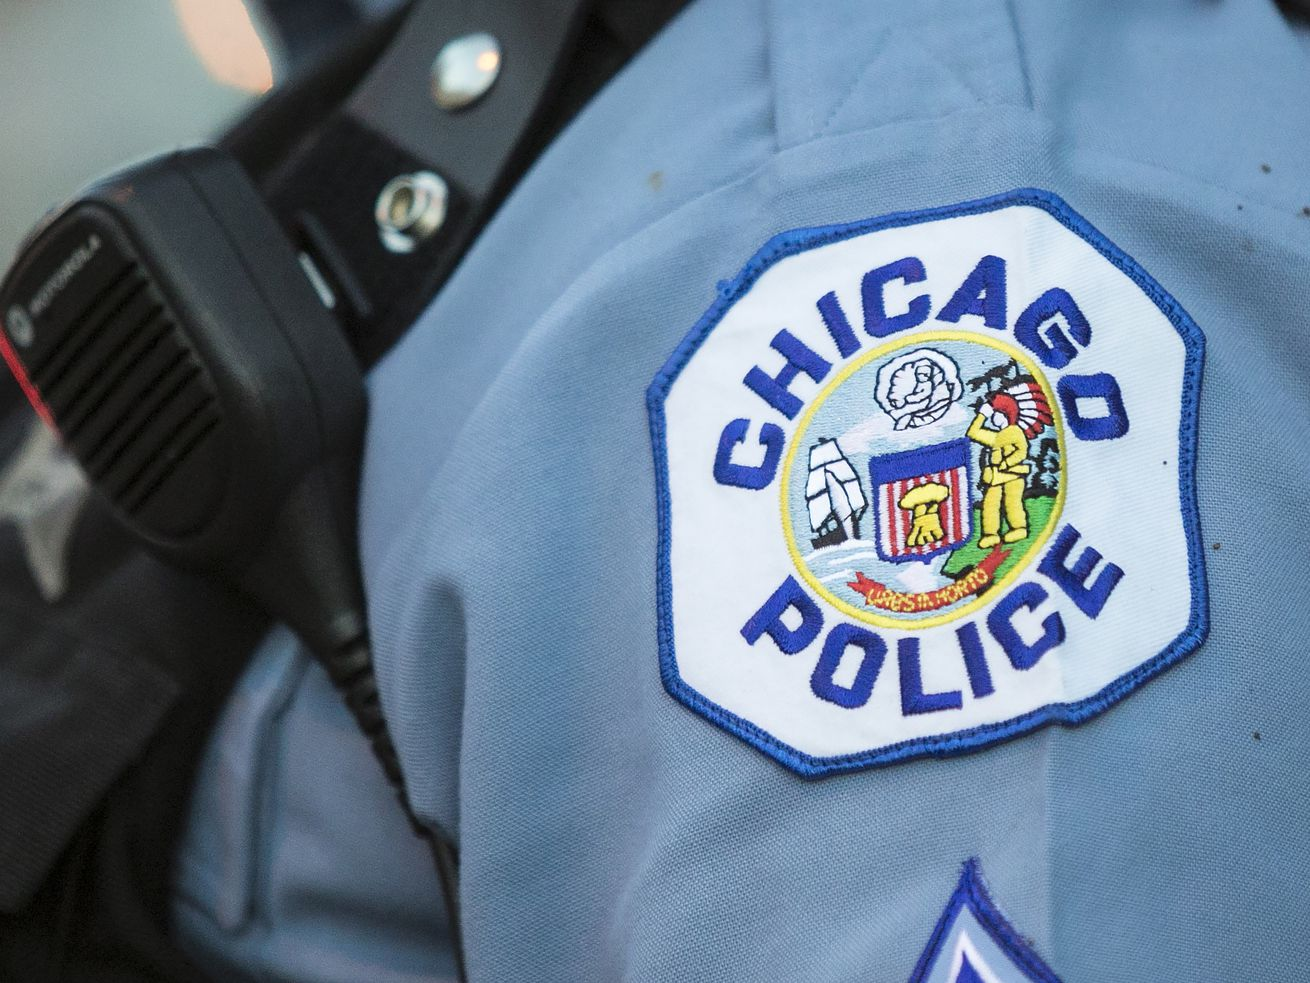 Police union makes financial-only counter-offer